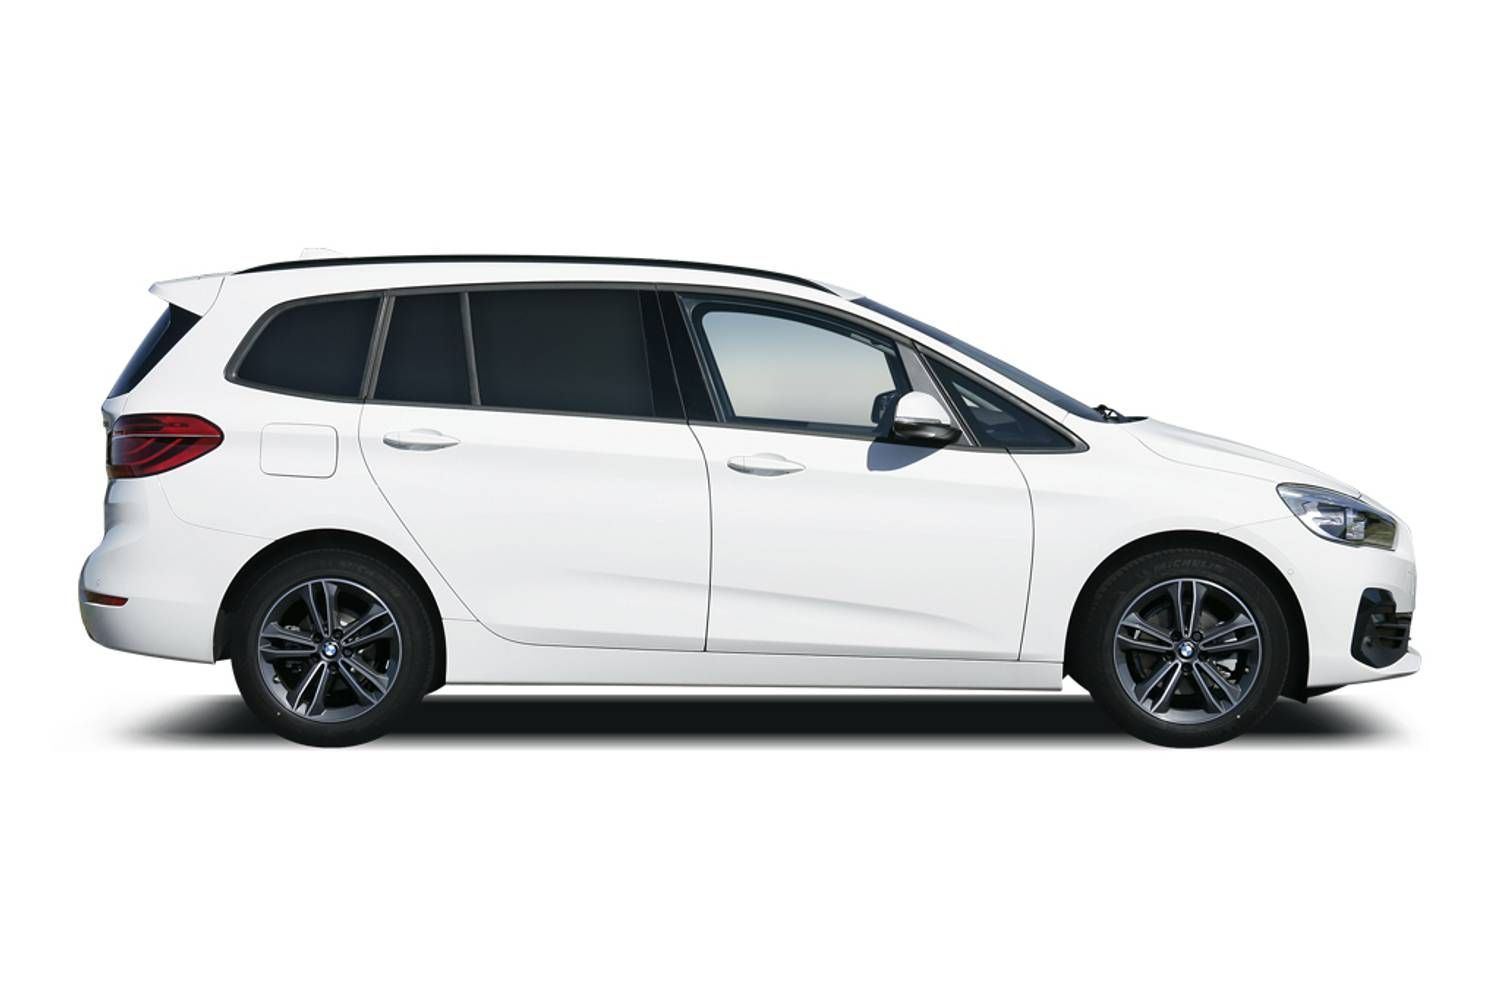 BMW 2 Series Gran Tourer 5dr Profile